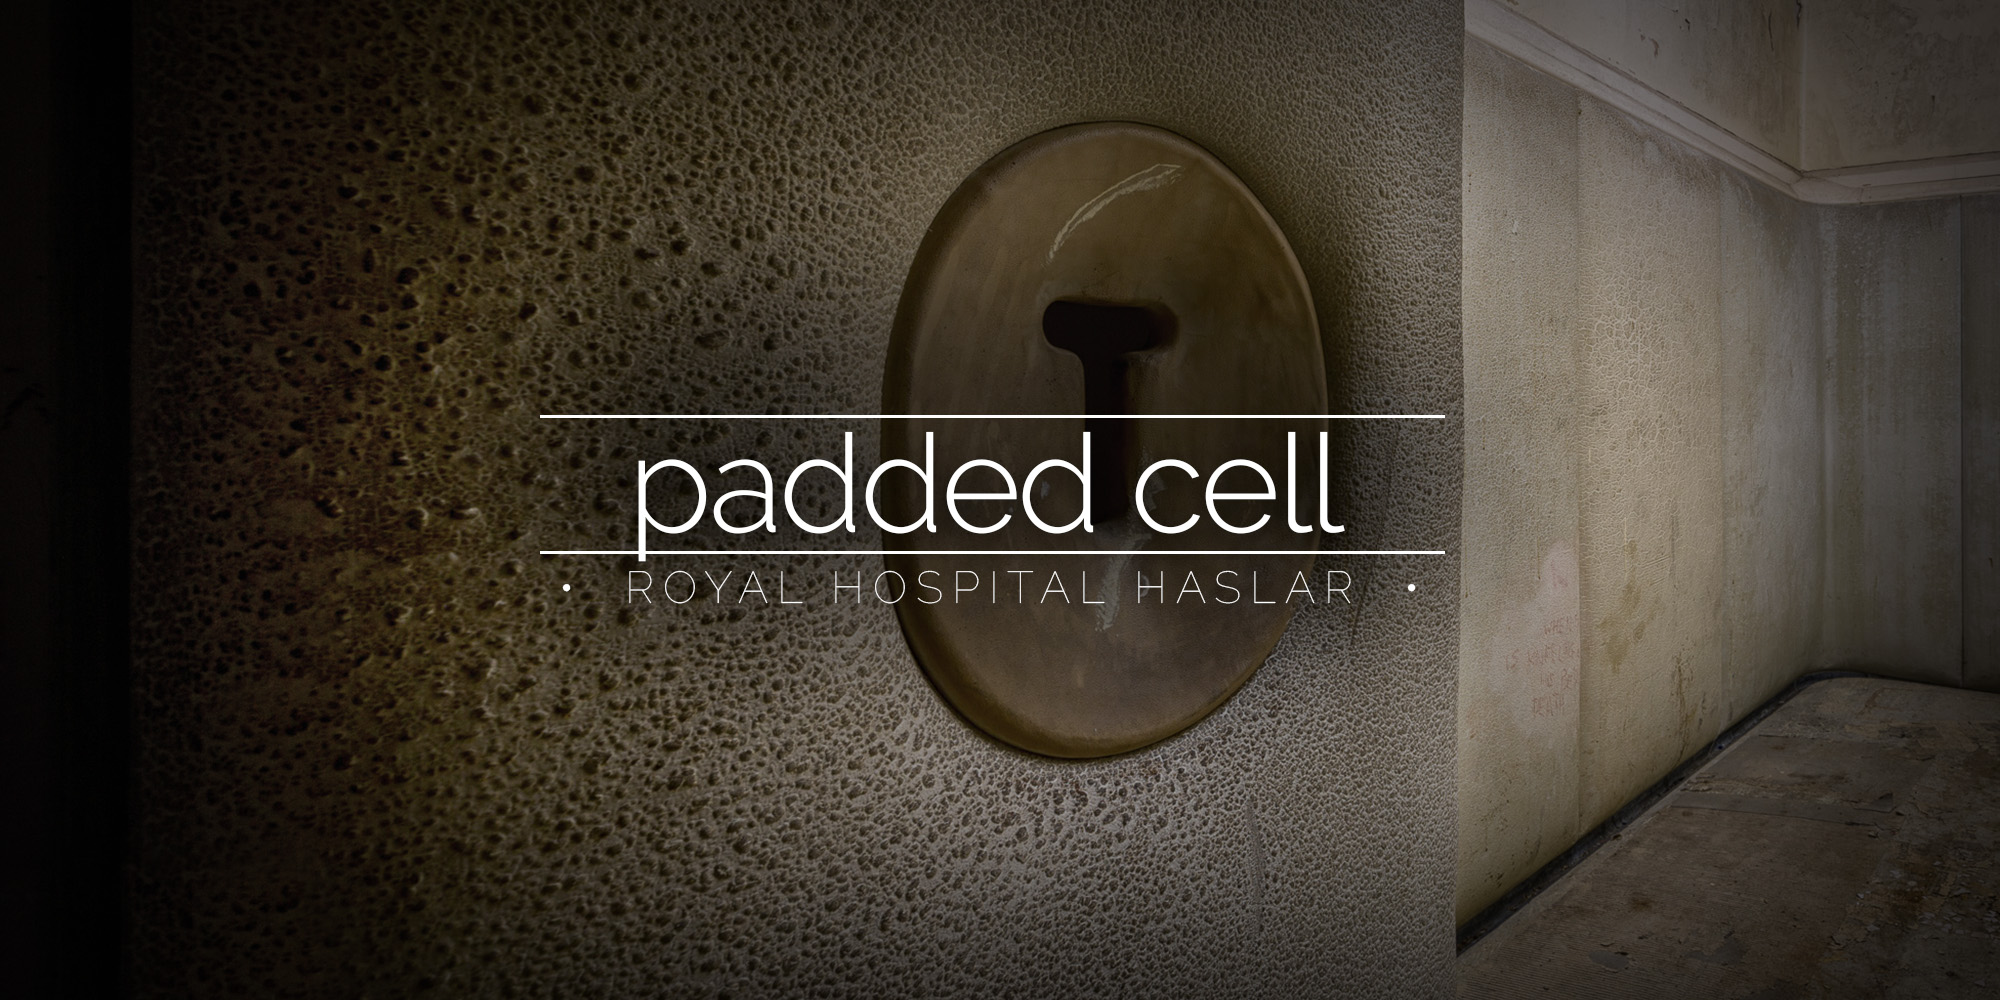 Royal Hospital Haslar Padded Cell